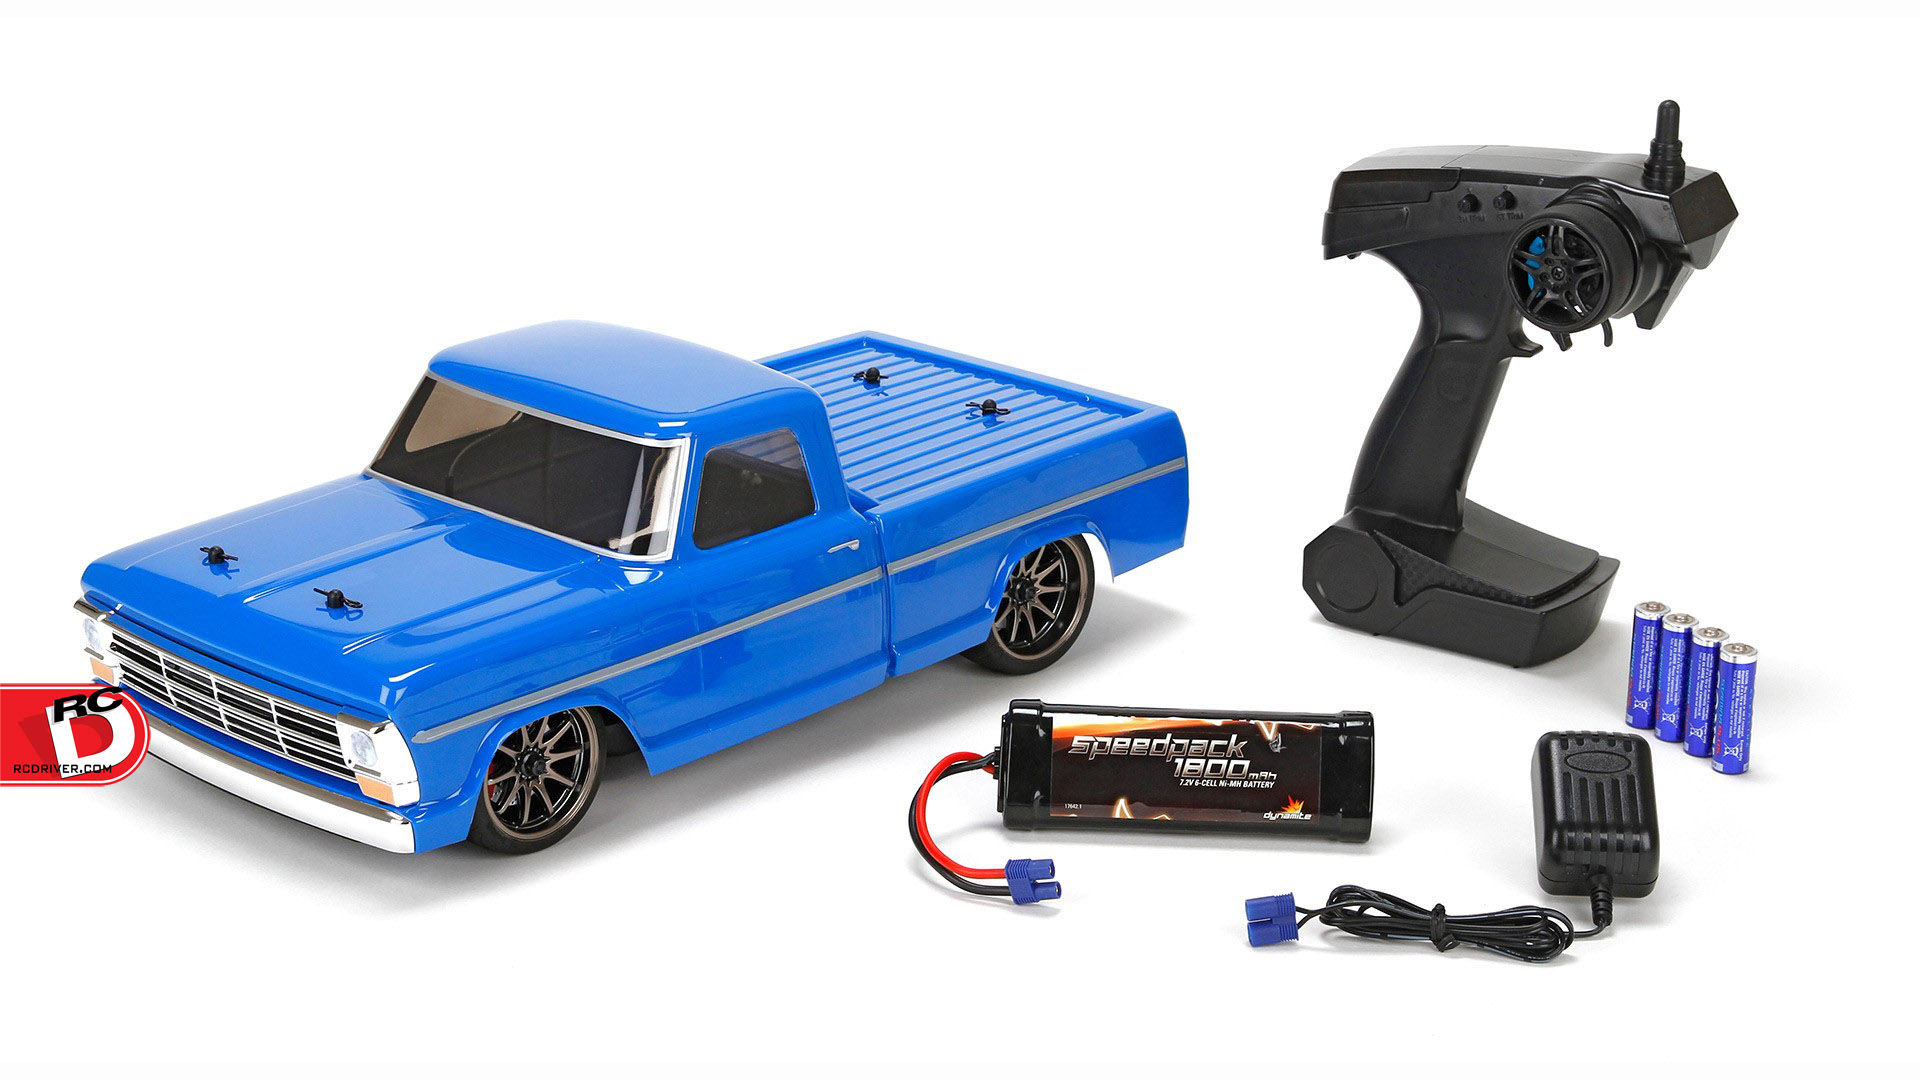 Vaterra 1968 Ford F-100 Pick Up Truck V100-S RTR